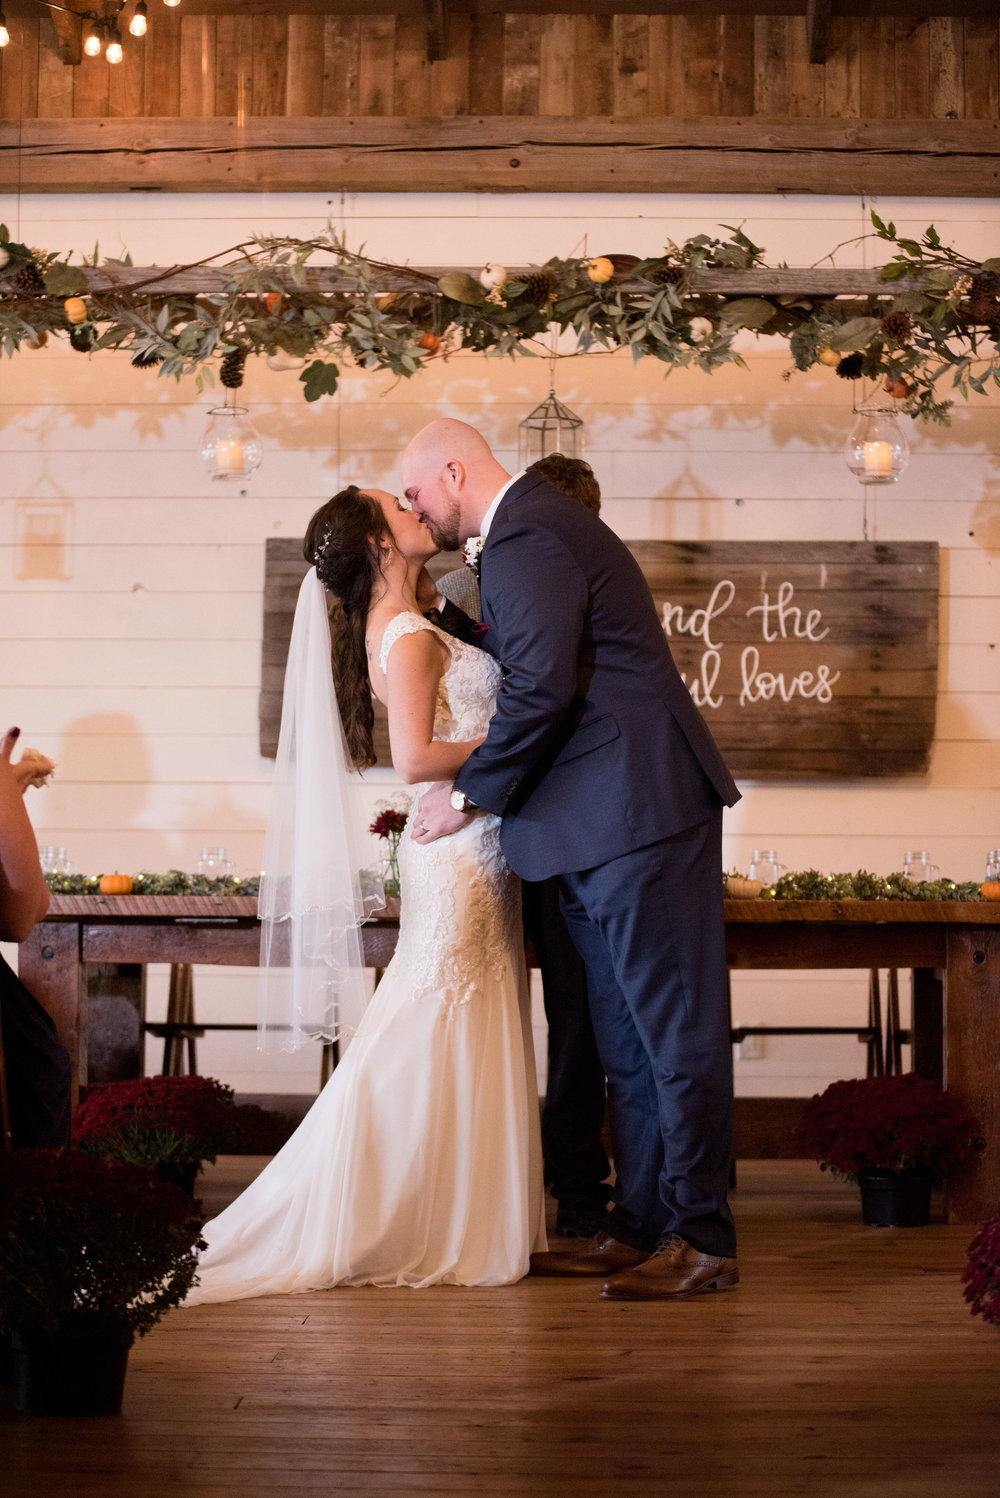 The ladder decor over the head table perfectly framed their ceremony and their sweet first kiss.